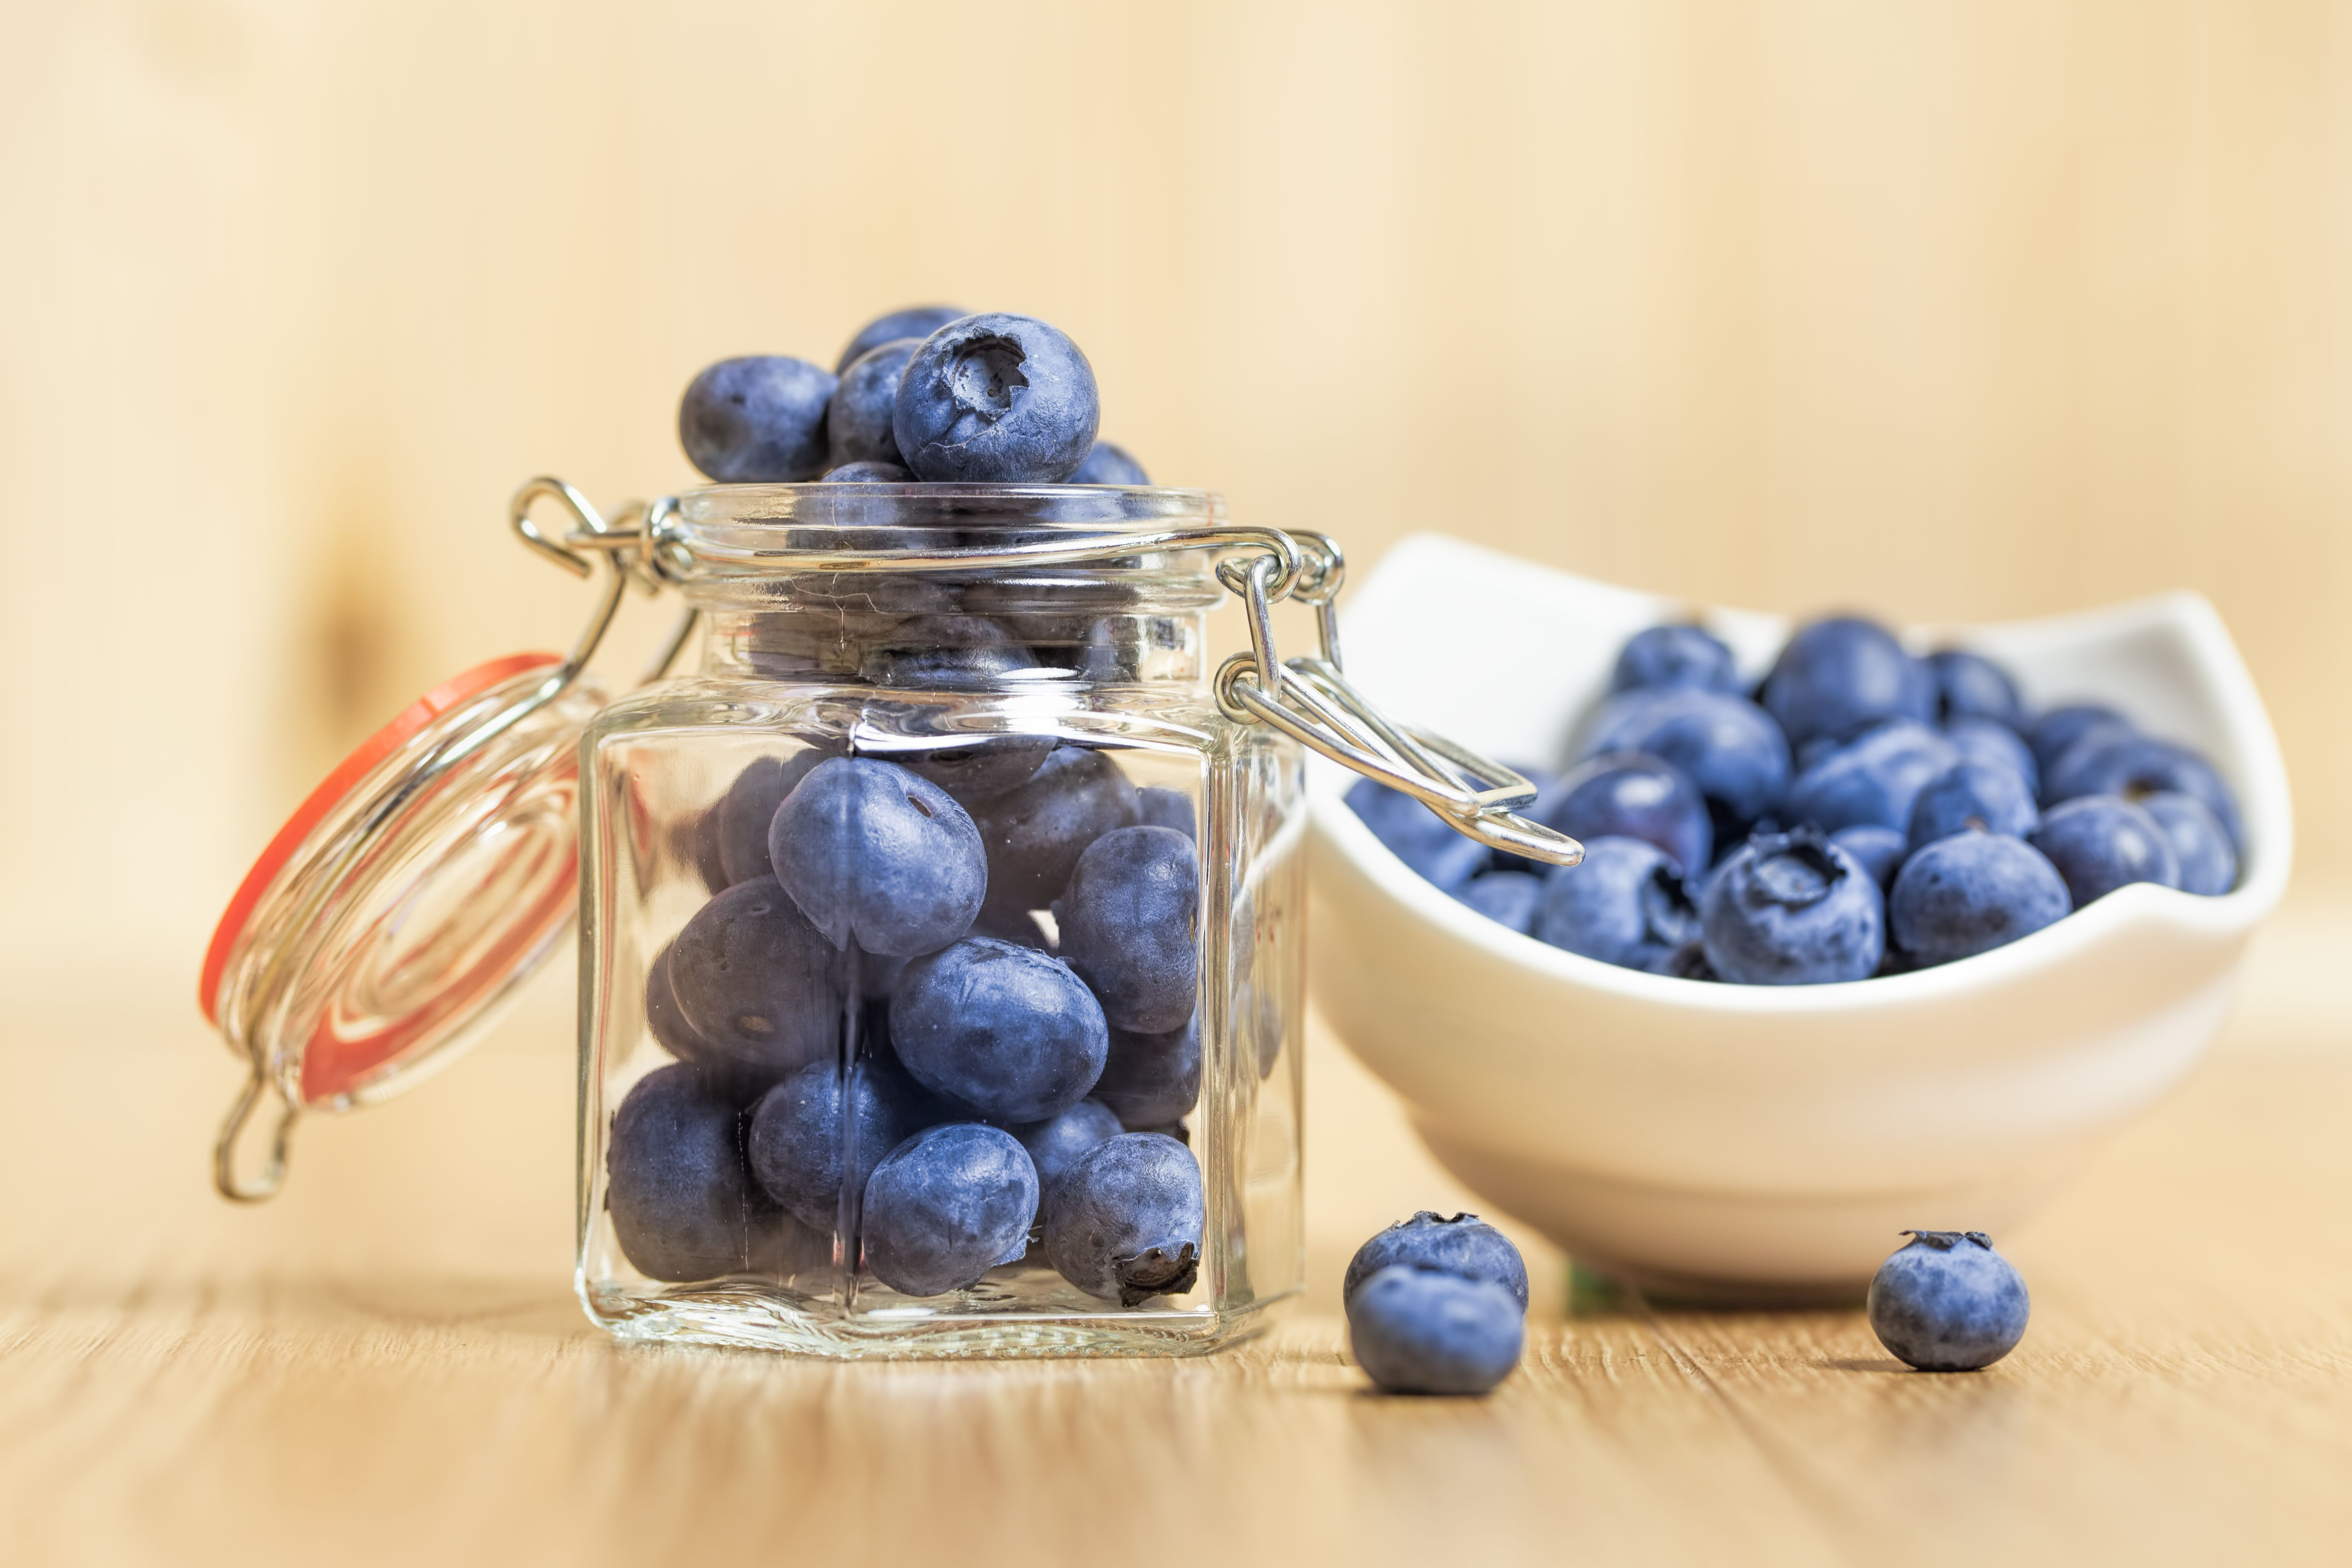 Close-Up Of Fresh Blueberries in a jar